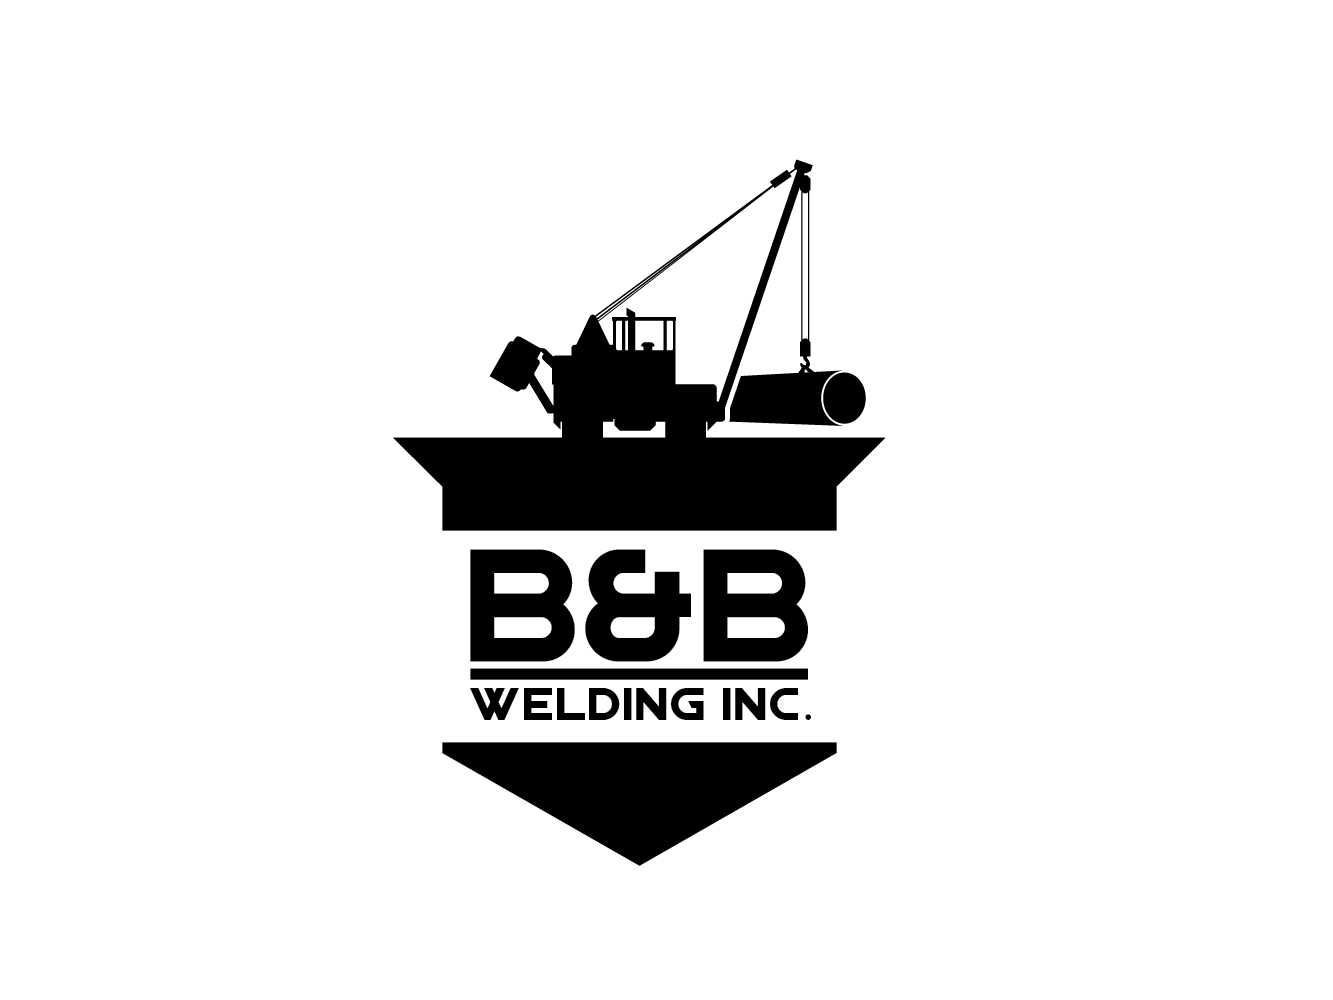 Logo Design by Cutris Lotter - Entry No. 64 in the Logo Design Contest Fun Logo Design for B&B Welding Inc..